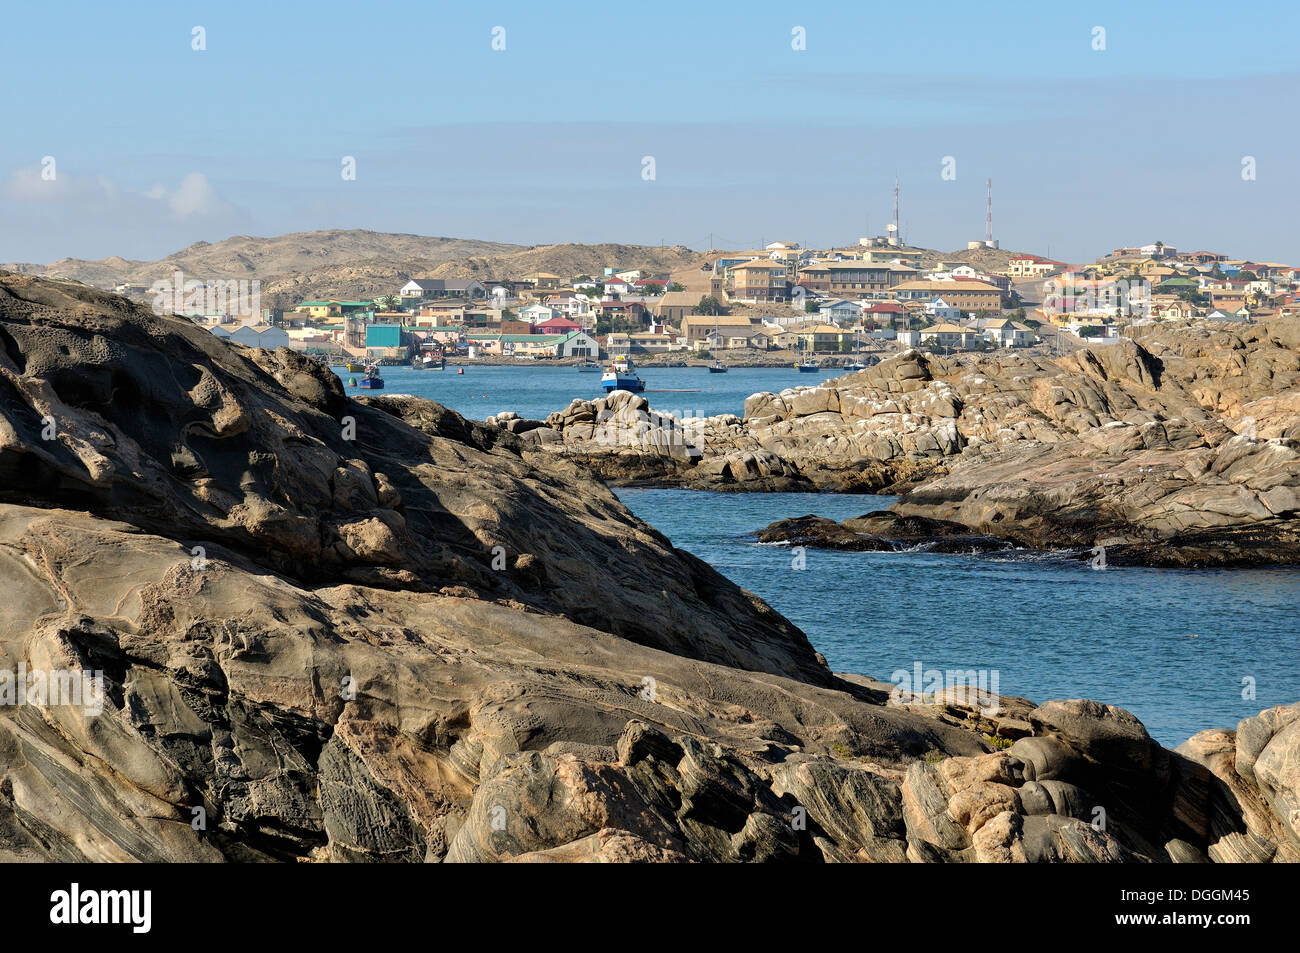 View from Shark Island of the seaside town of Luderitz in Namibia - Stock Image